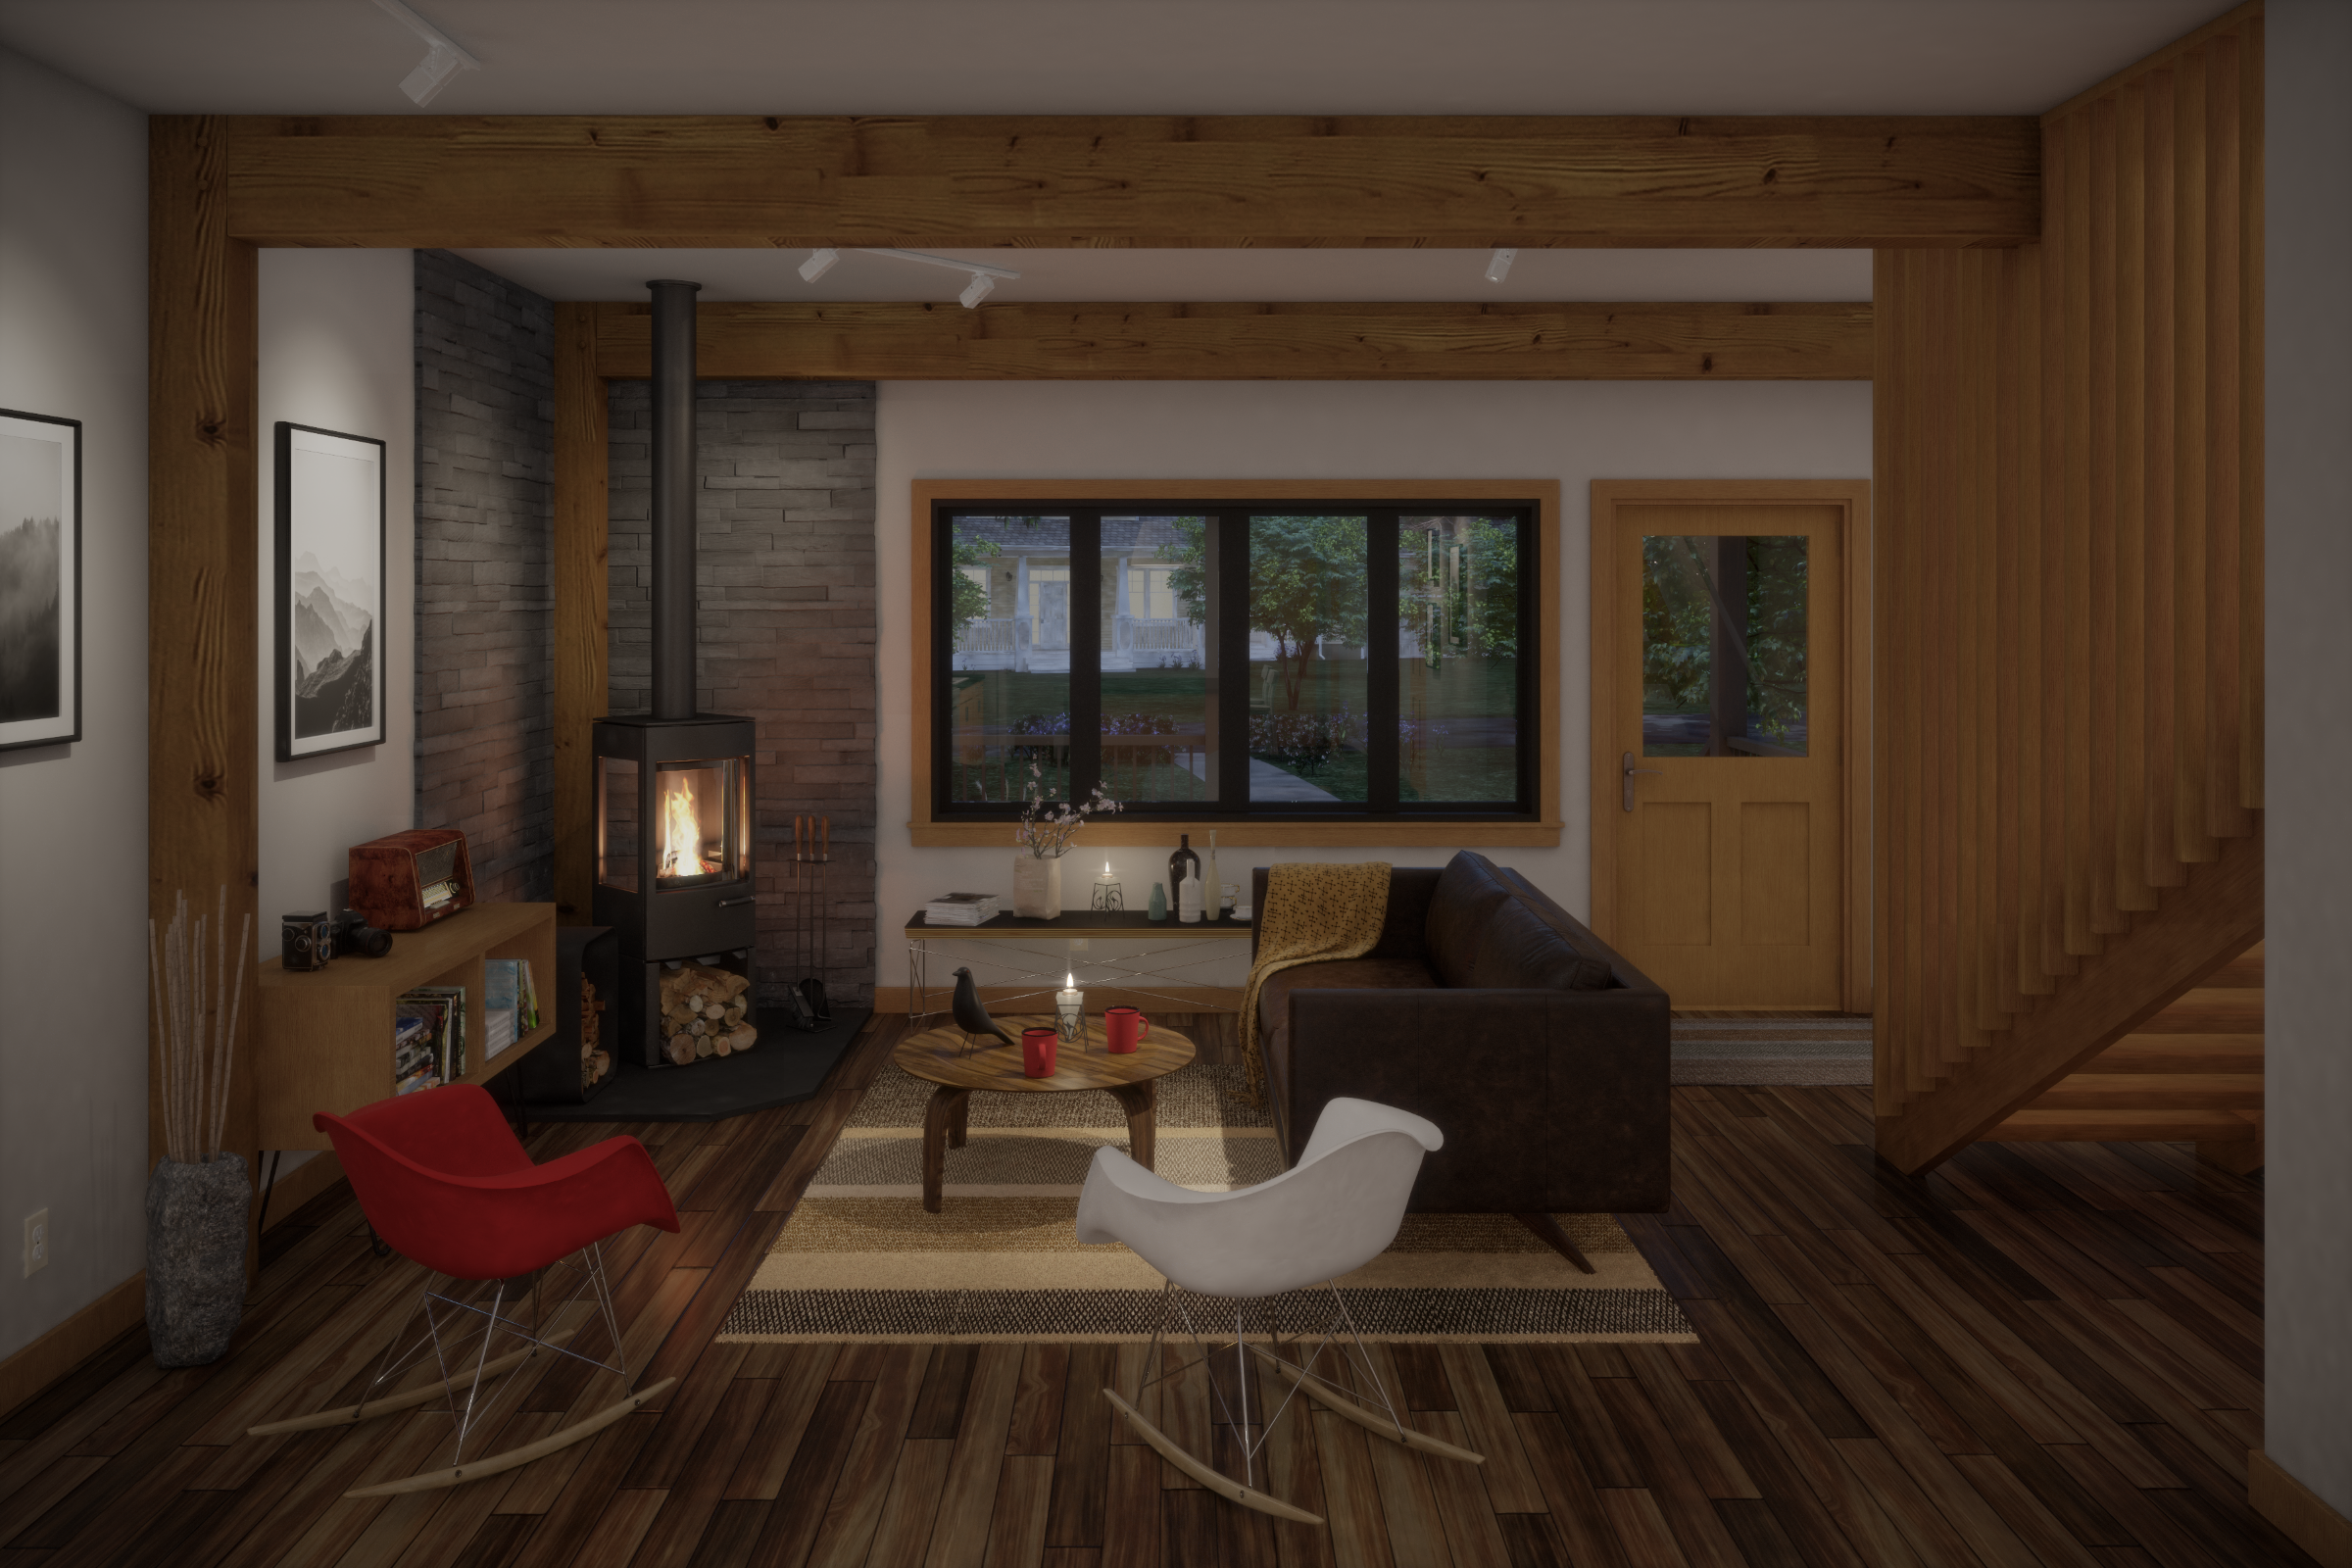 FARMHOUSE_INTERIOR-07_0000_FINAL.png